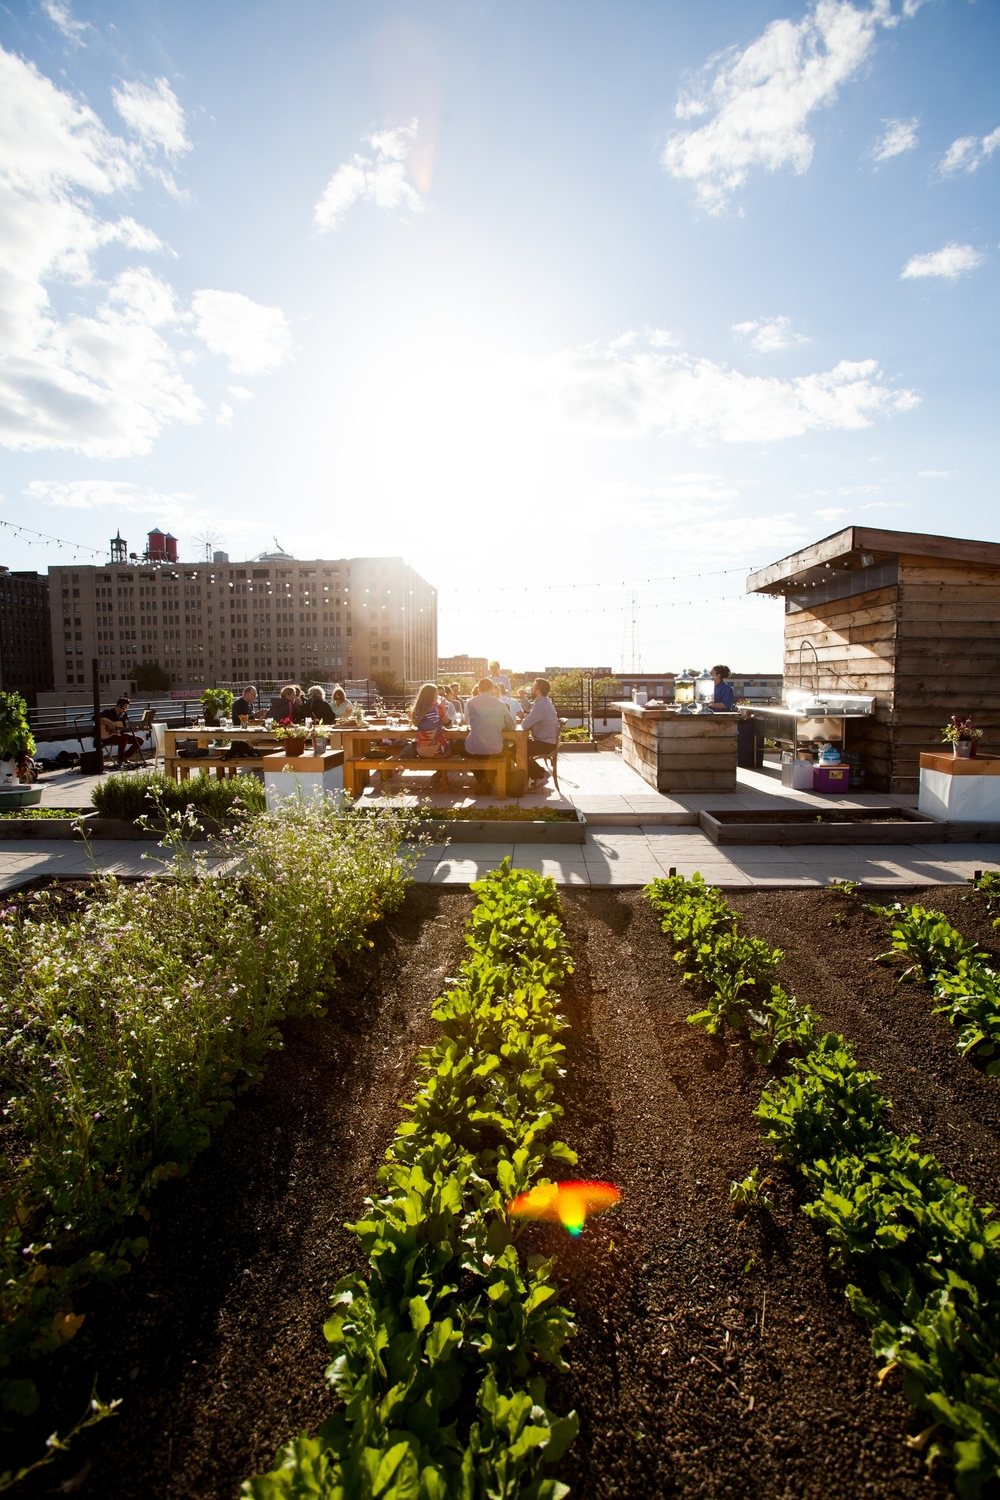 Rooftop farm rows in the foreground, people sitting on picnic tables in community hub space with counter, sink, and shed space, city museum rooftop in distance